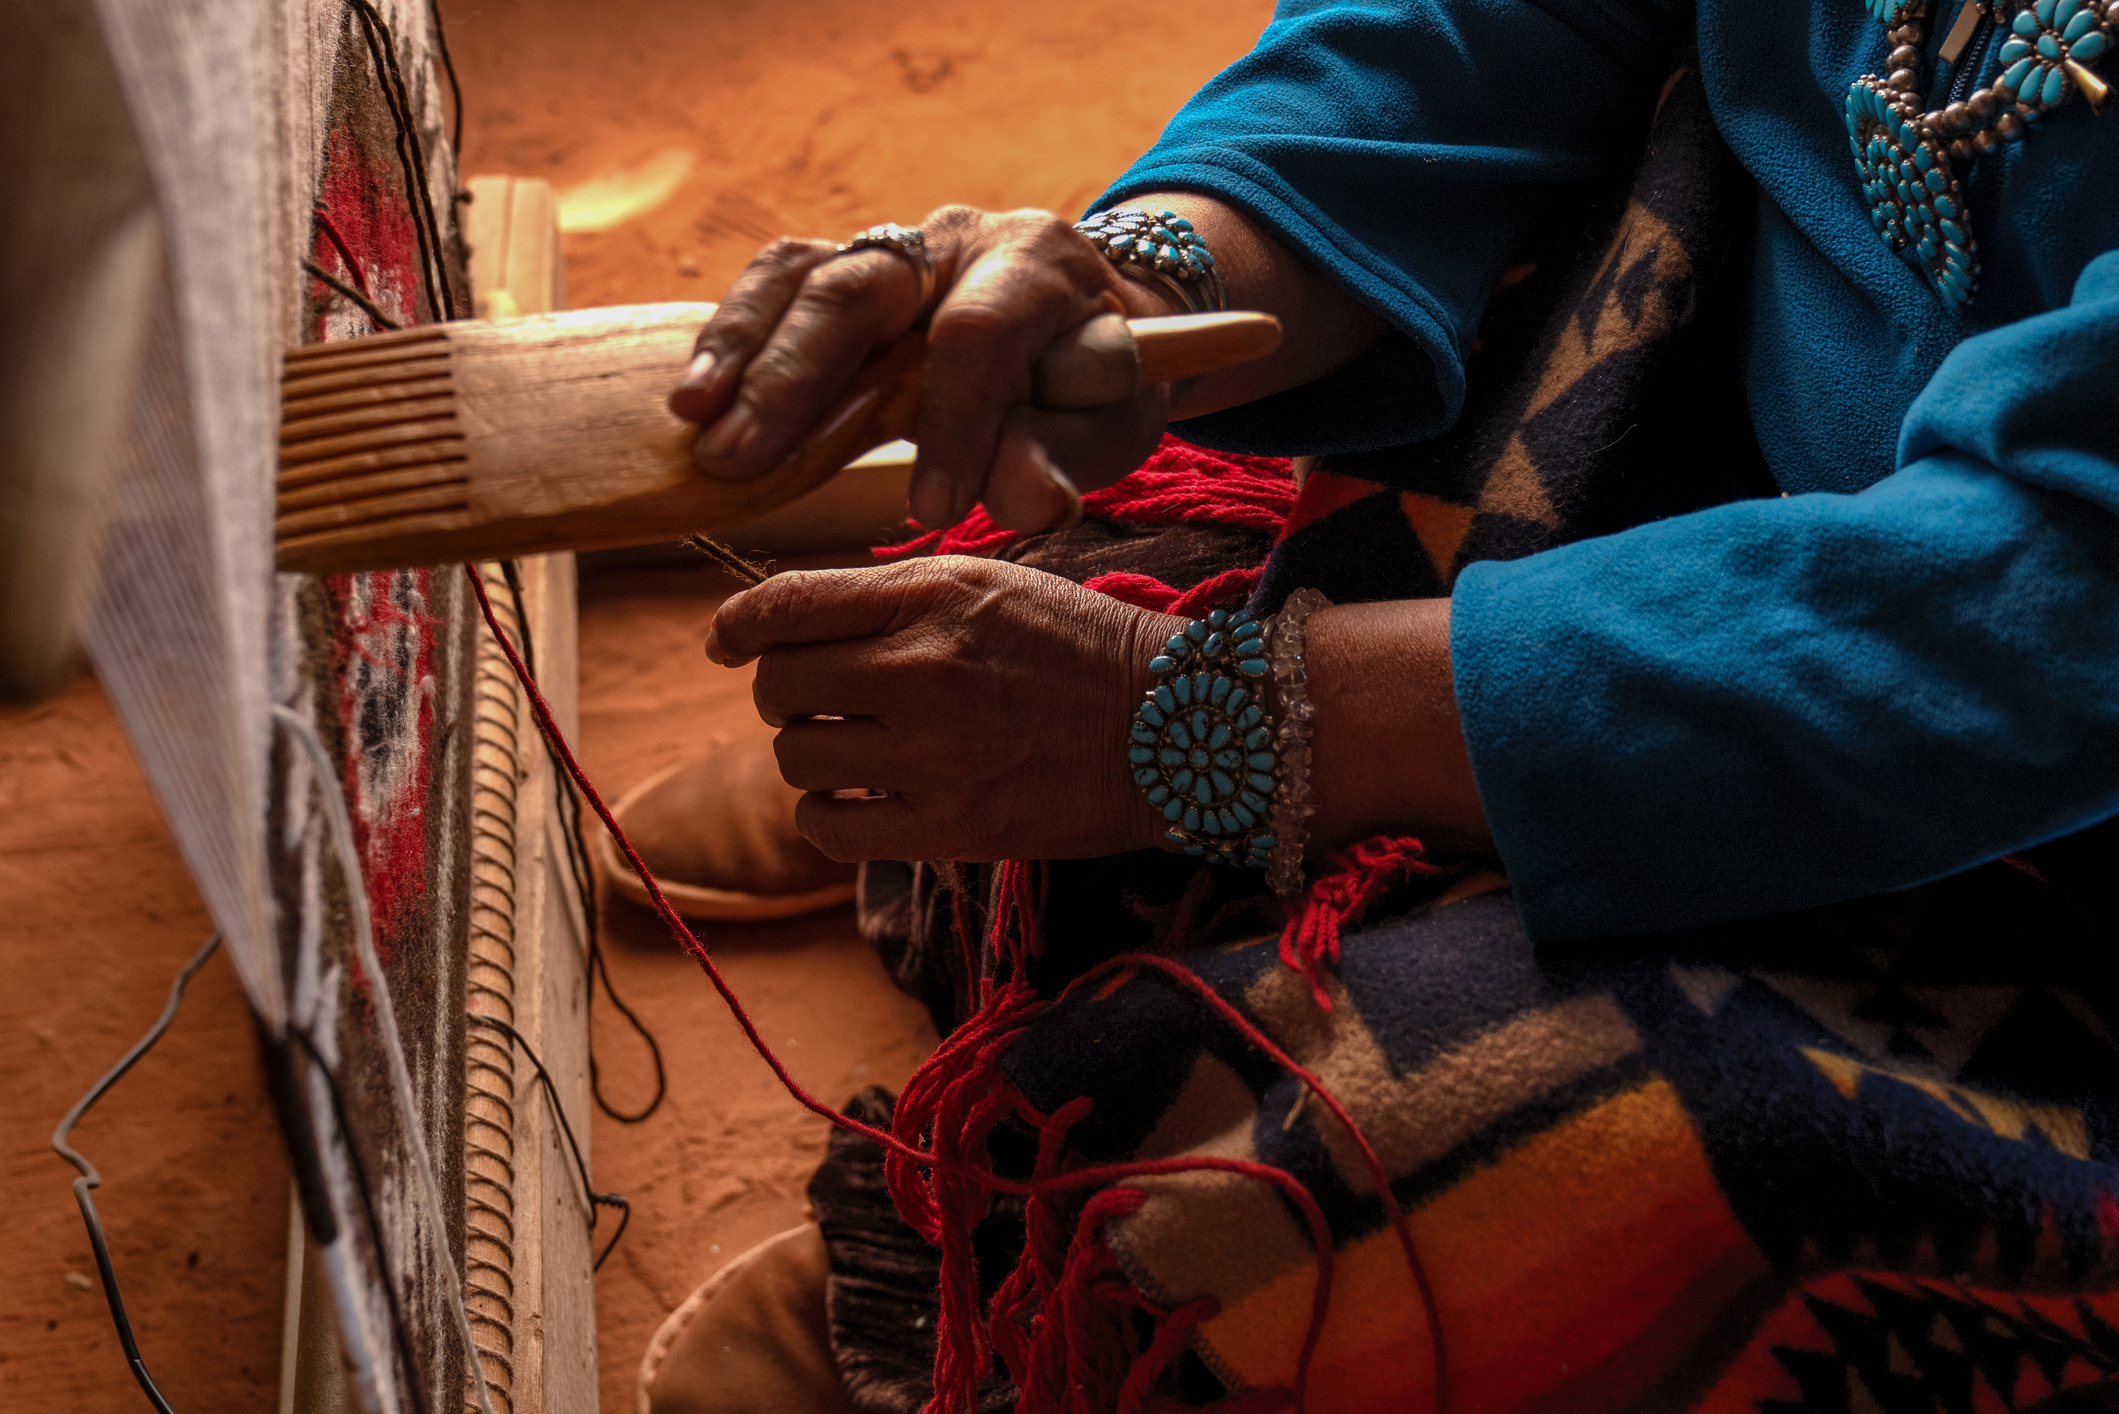 Traditional Navajo elderly woman working on a blanket loom in an authentic hogan